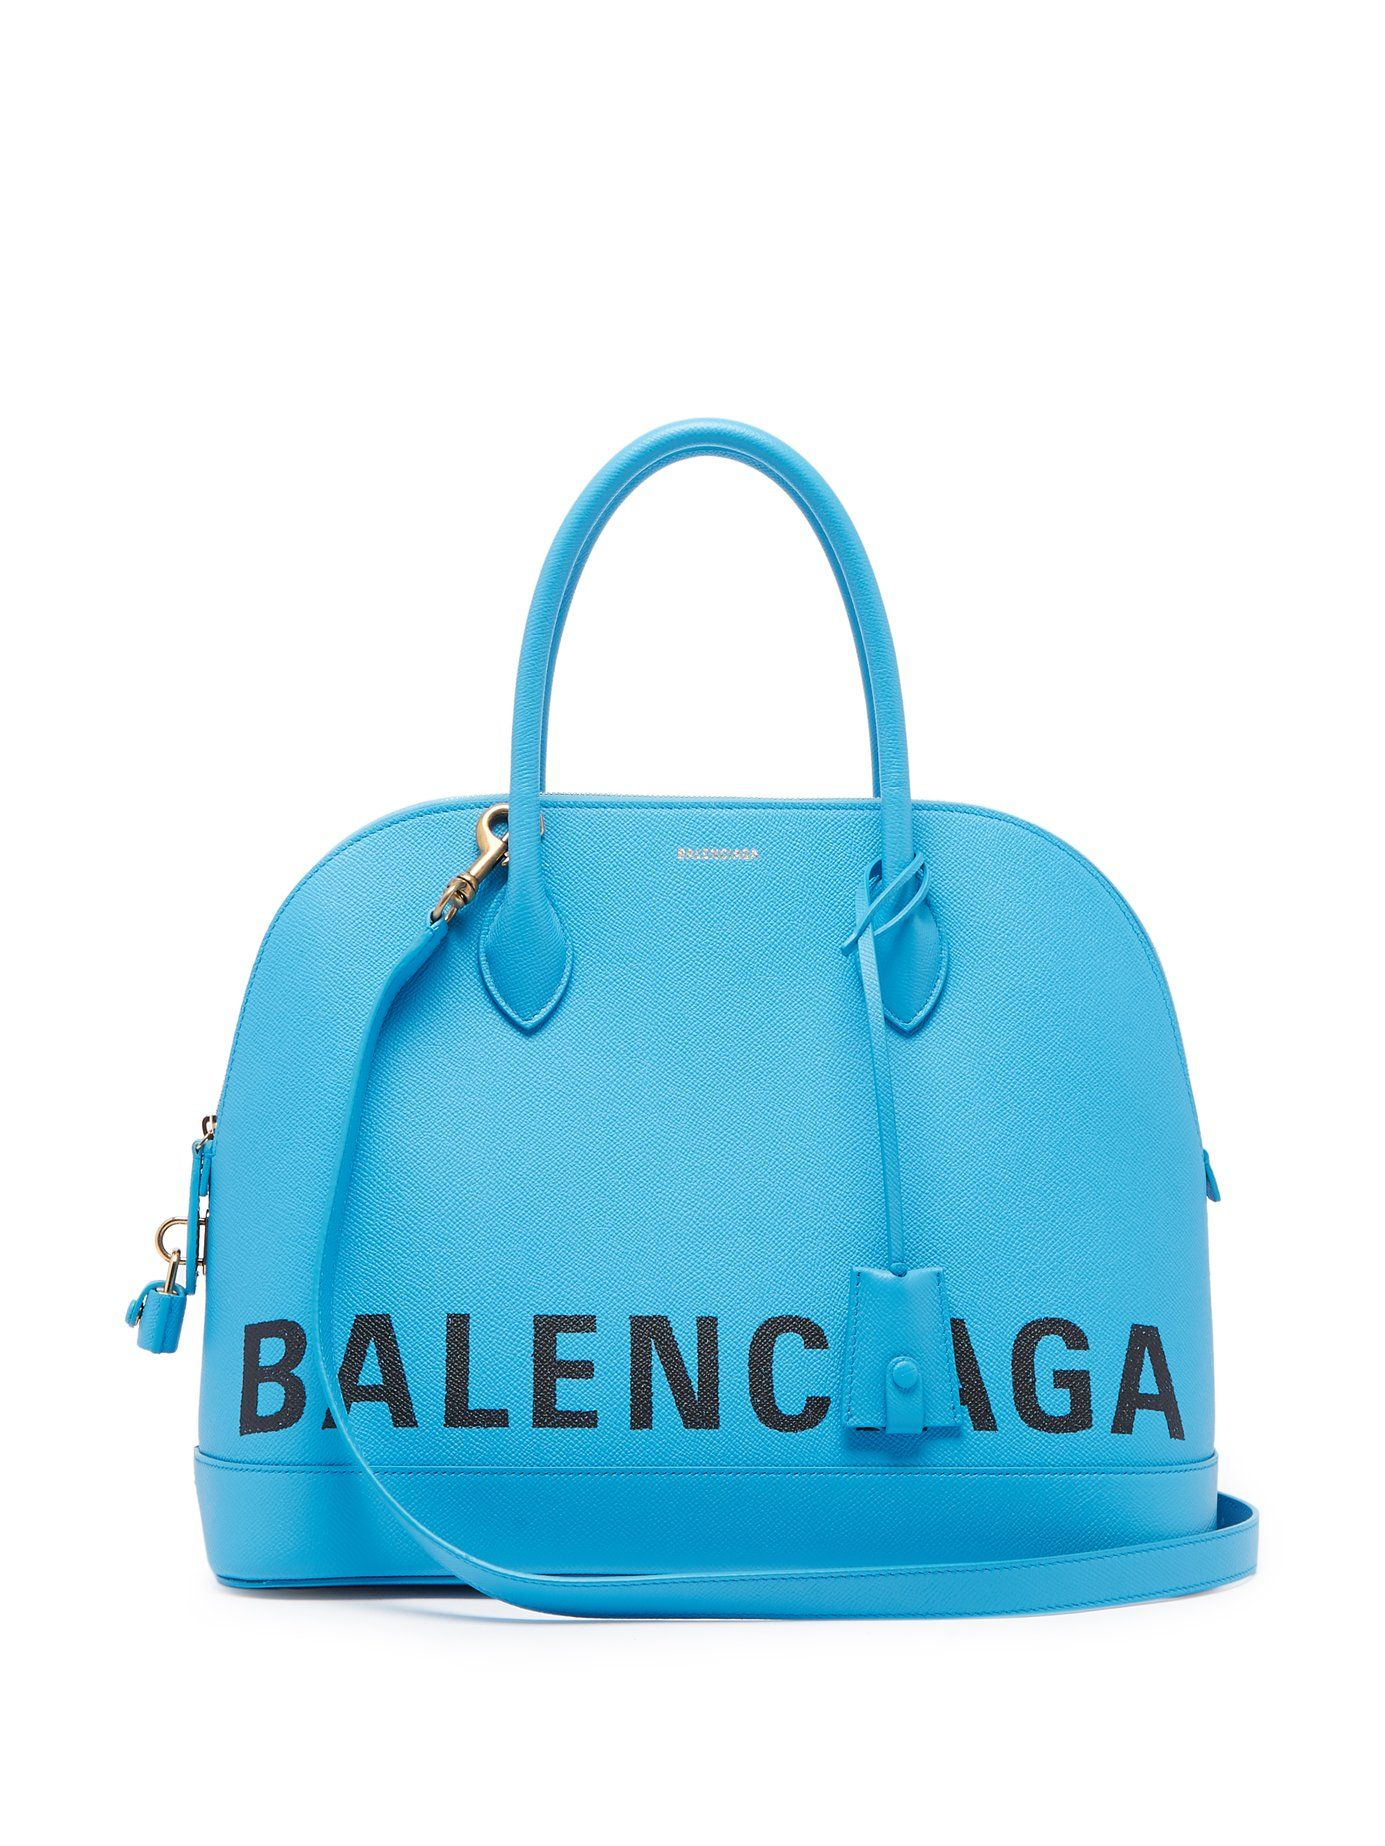 shop-balenciaga-ville-m-turquoise-blue-leather-top-handle-bag